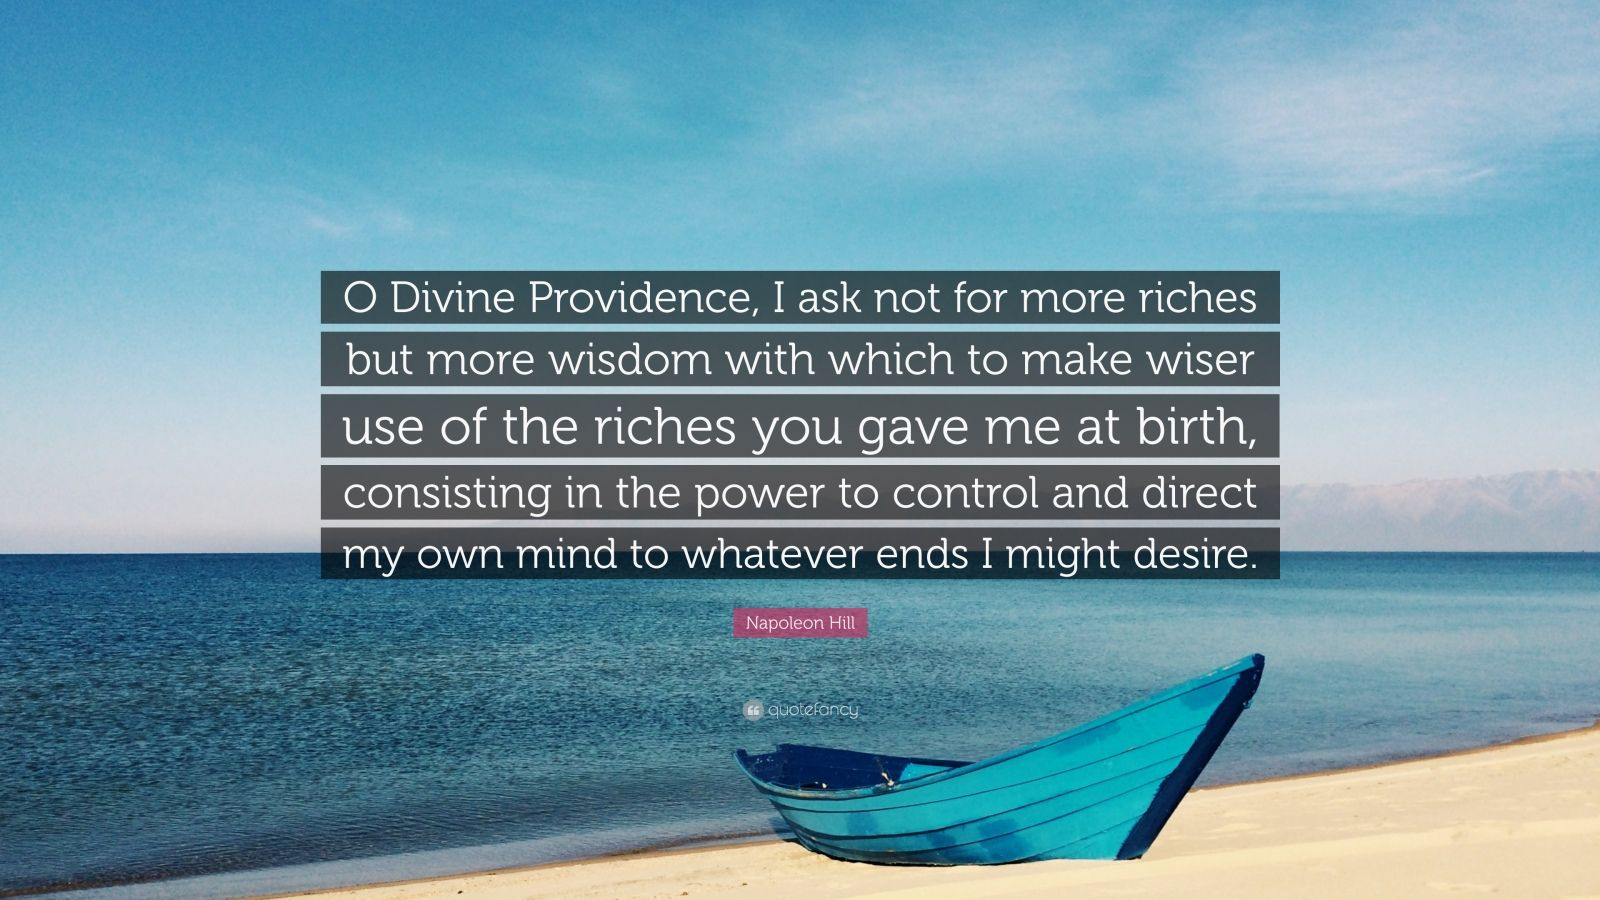 "Napoleon Hill Quote: ""O Divine Providence, I ask not for more riches but more wisdom with which to make wiser use of the riches you gave me at birth, consisting in the power to control and direct my own mind to whatever ends I might desire."""